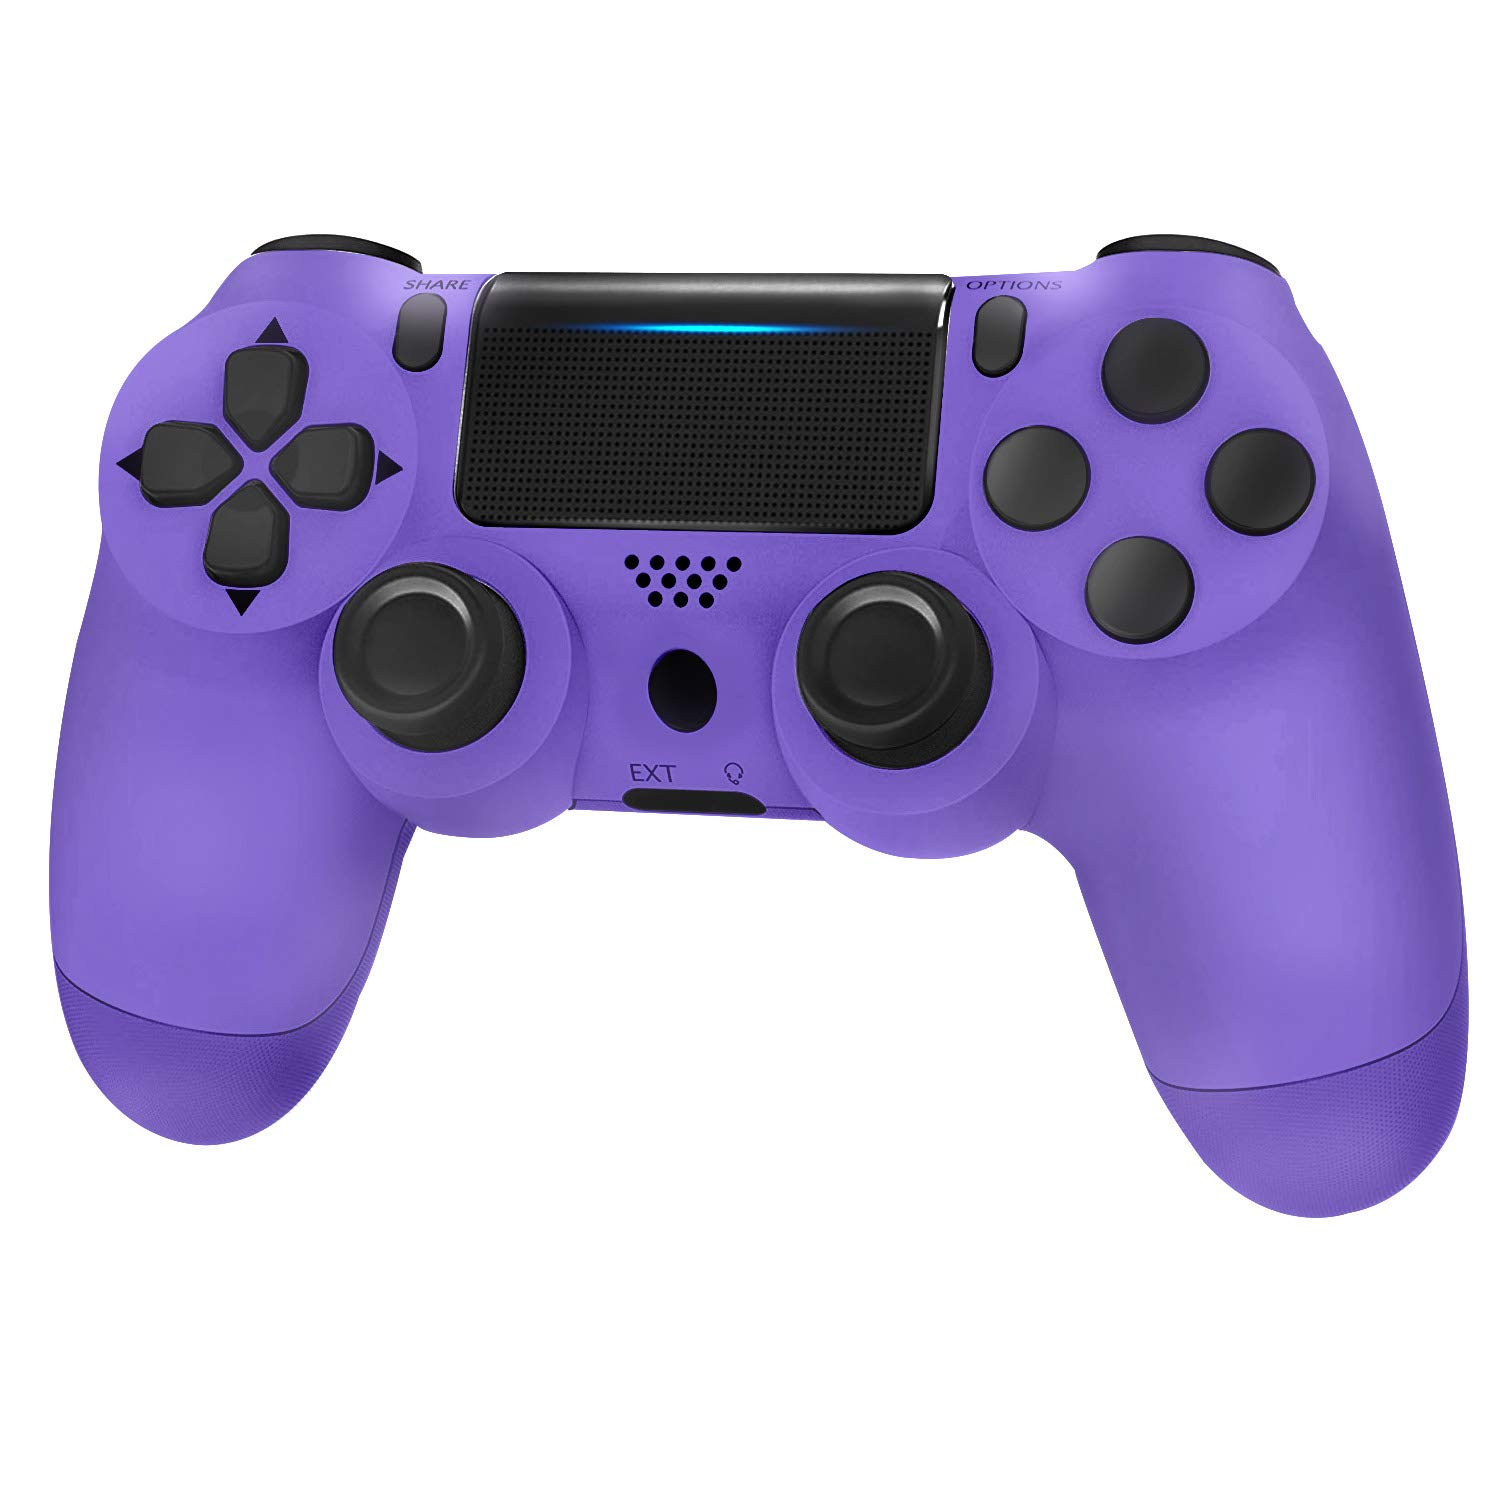 Wireless Controller for Playstation 4, JORREP Wireless Game Controller Compatible with PS4/Pro/Slim Console, Purple